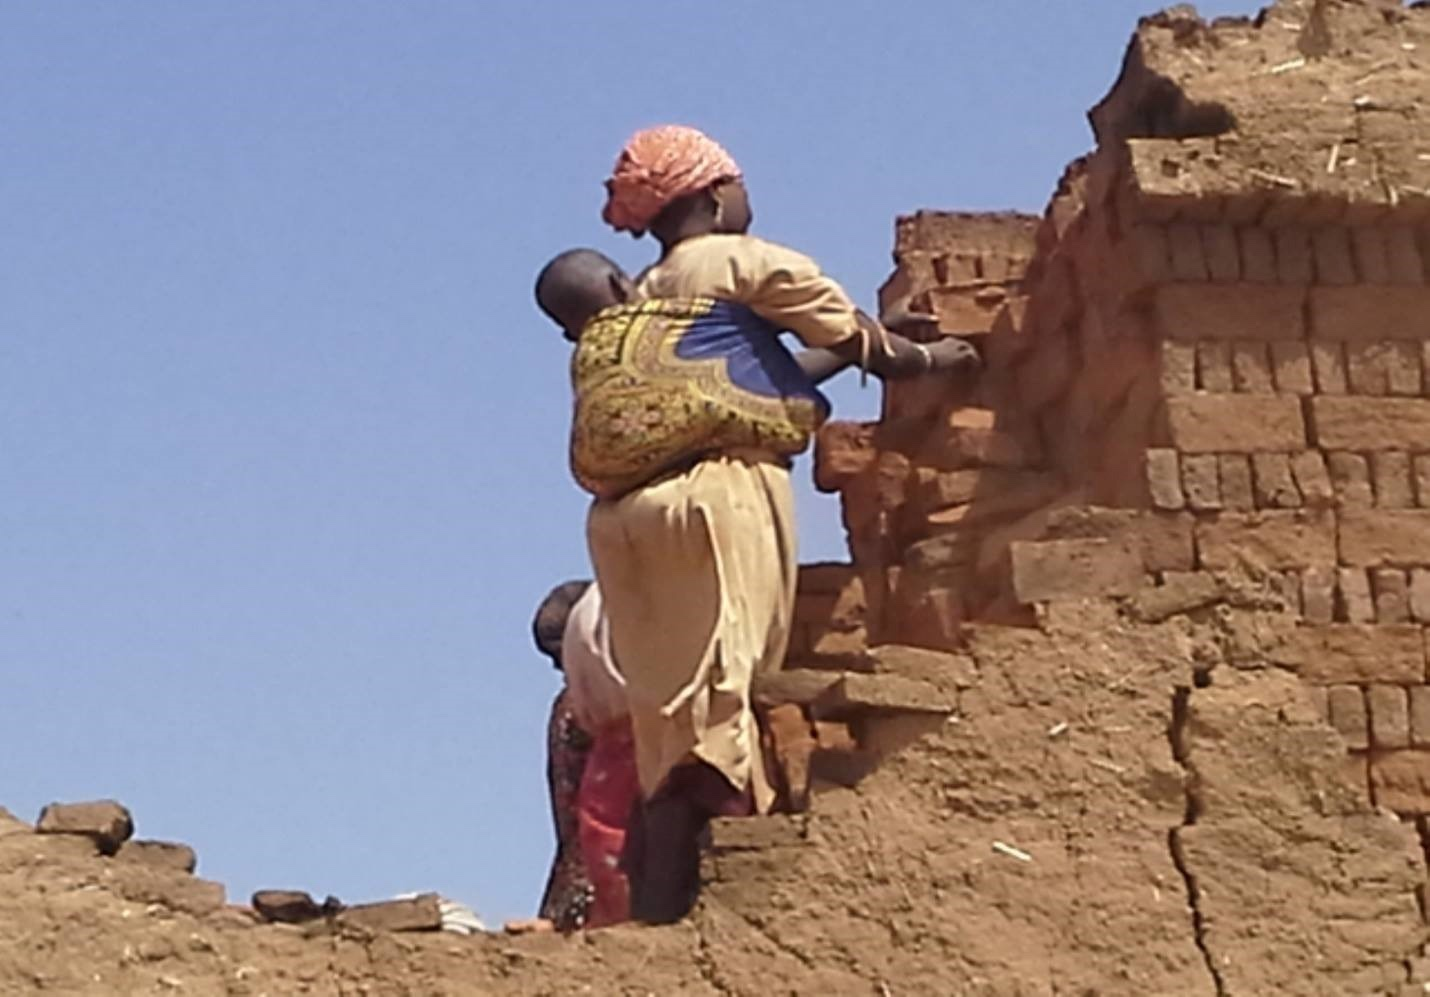 A woman working at a brick kiln while carrying her child at an IDP Camp near El-Fashier, Sudan